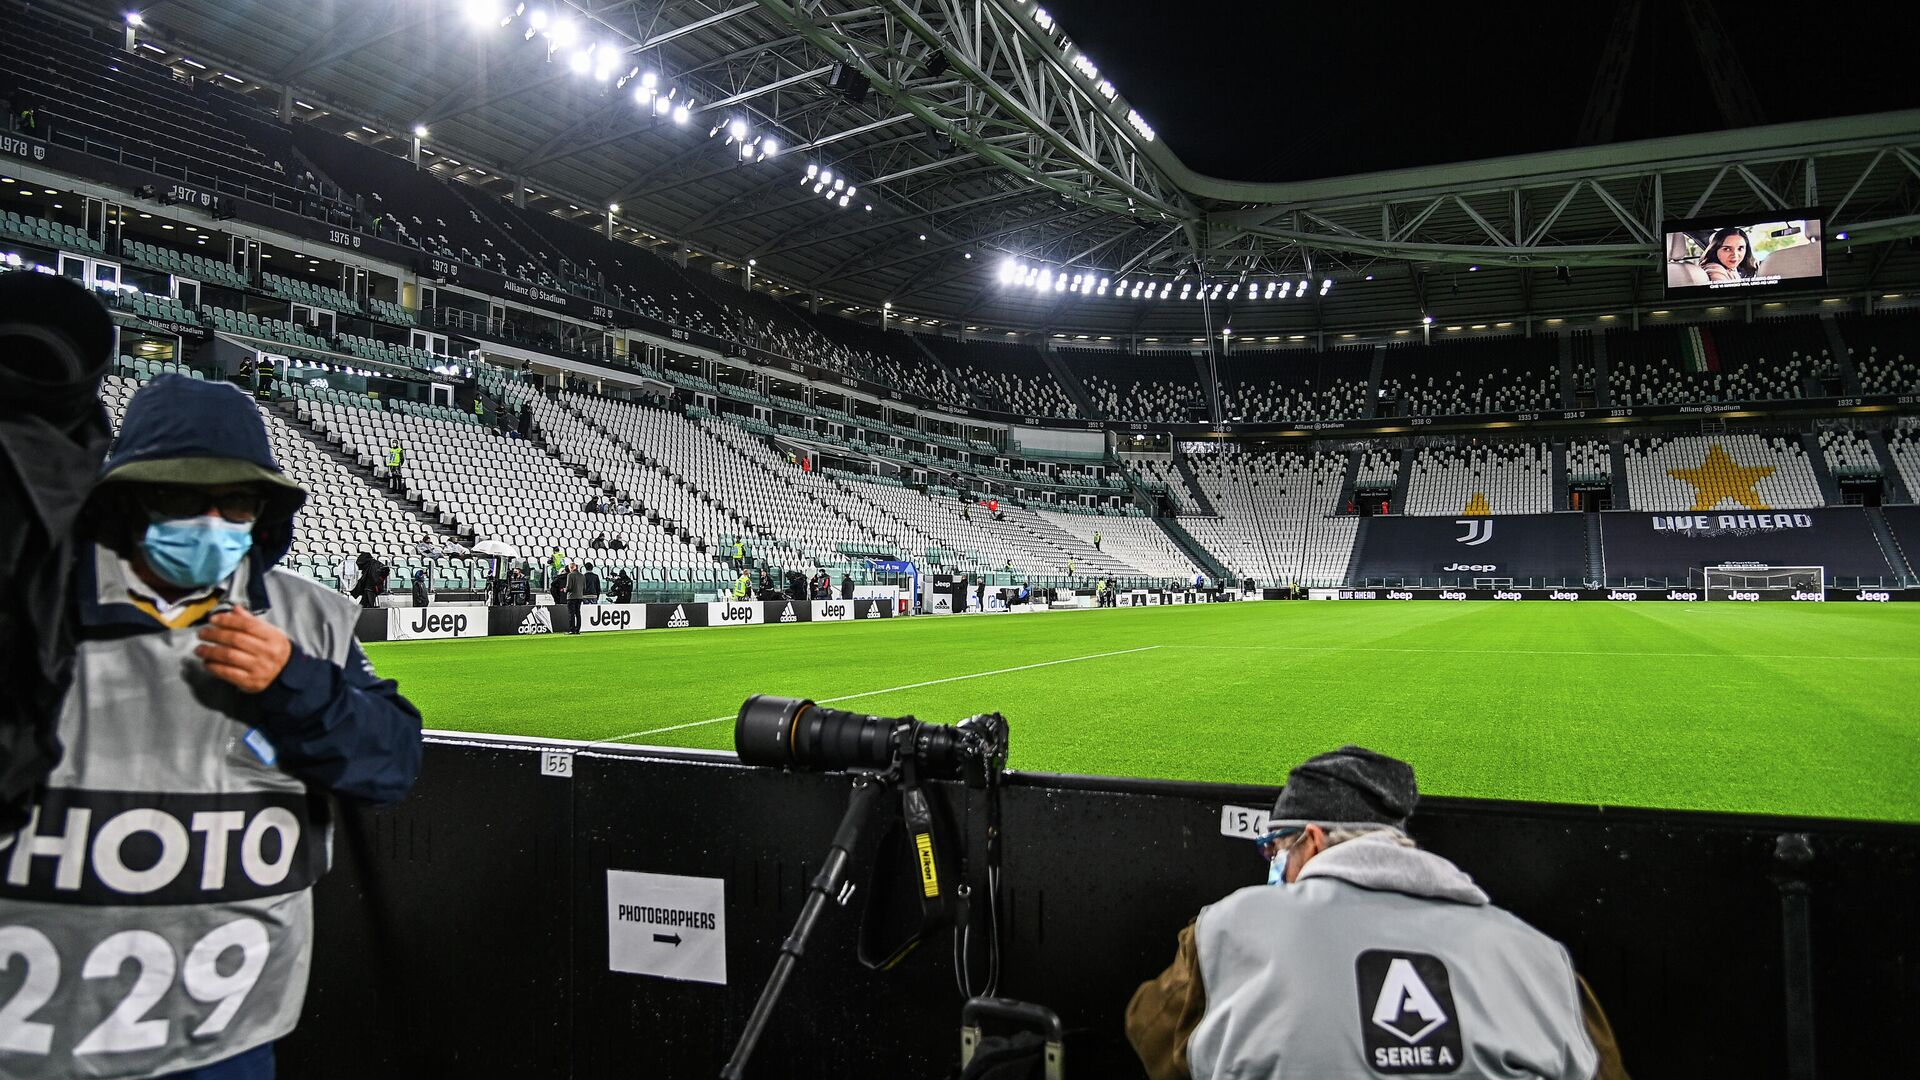 Sports photographers wait on October 4, 2020 at the Juventus stadium in Turin, prior to the Italian Serie A football match Juventus vs Napoli, still scheduled following Lega Serie A's confirmation despite Napoli remaining at home in Naples. - Napoli's squad was remaining in Naples, complying with a decision by regional health authorities, as Juventus confirmed they would take to the field as scheduled despite two positive tests among their staff. If Napoli do not play they would forfeit the game 3-0. (Photo by Vincenzo PINTO / AFP) - РИА Новости, 1920, 10.11.2020